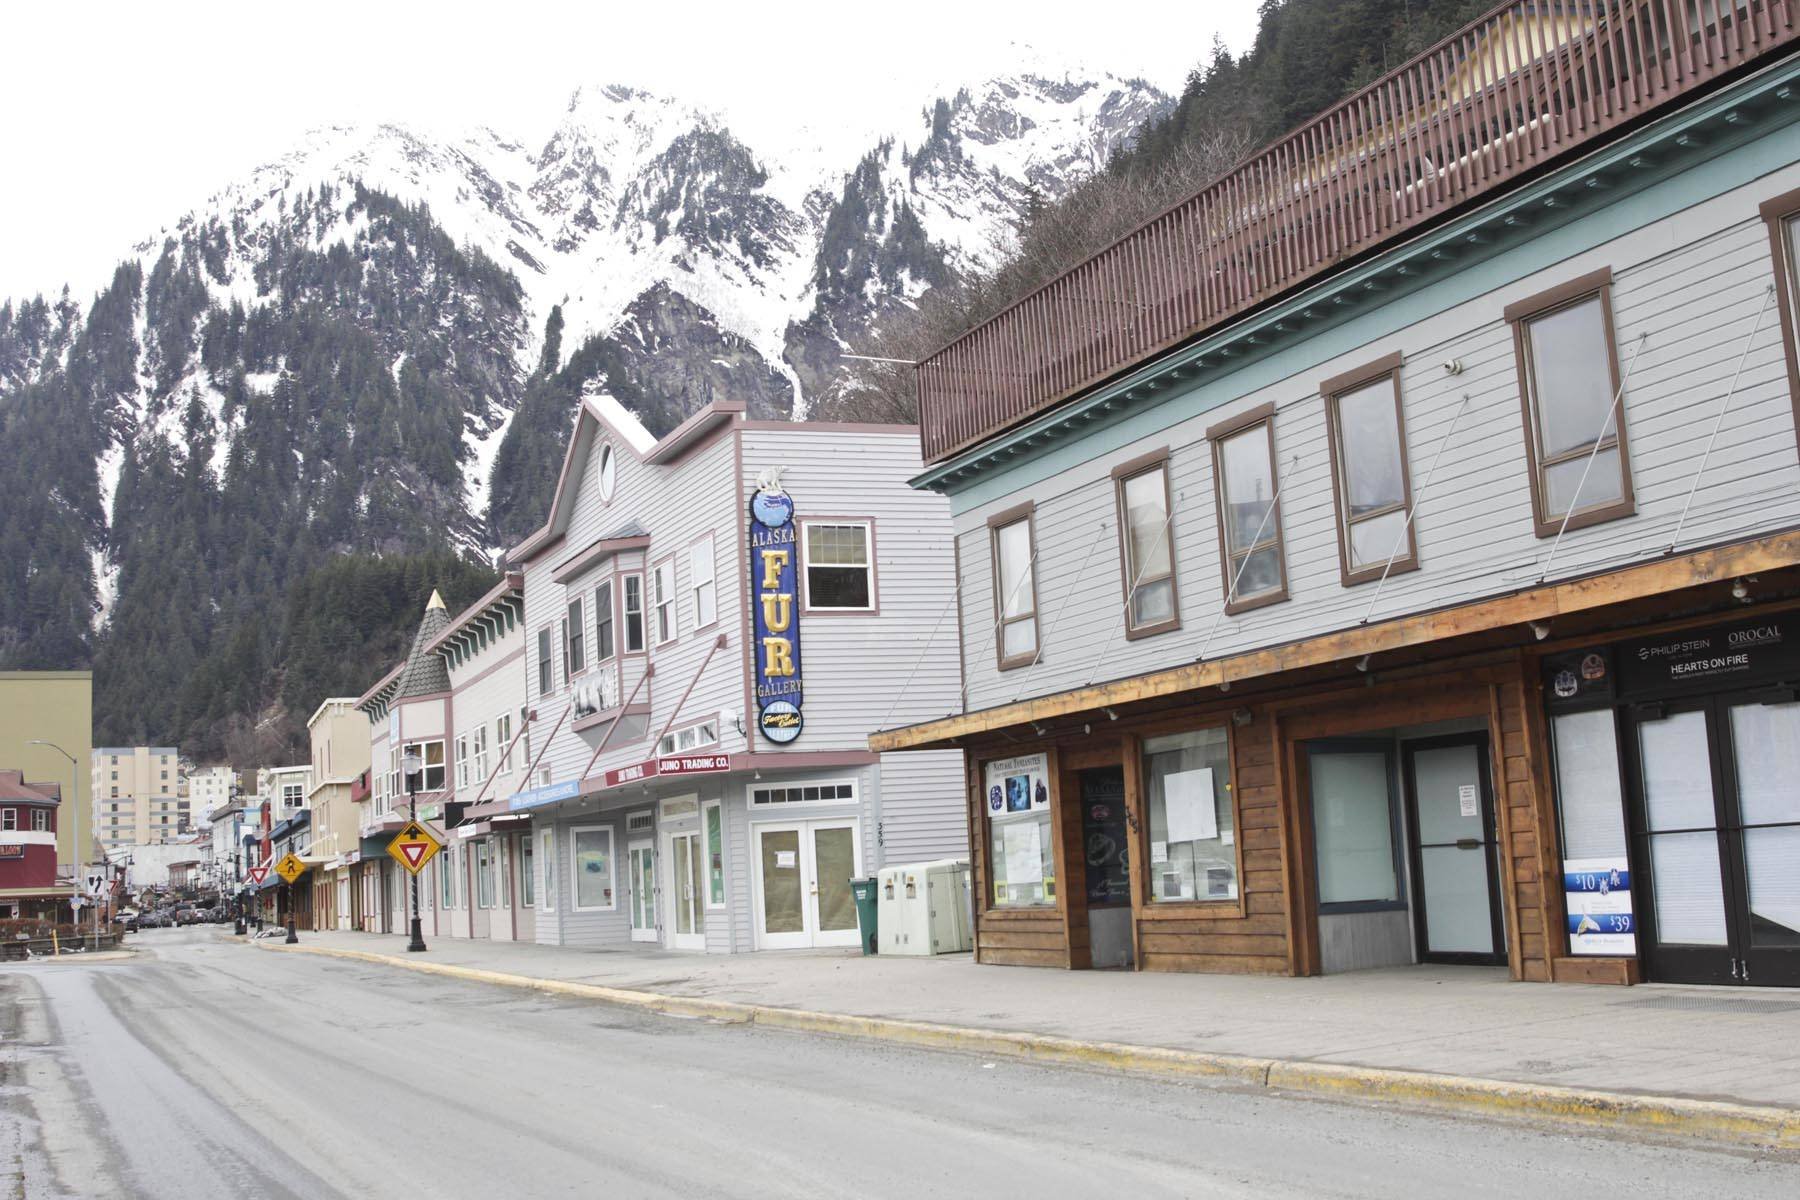 No cruises till July at the earliest mean these tourist-targeted shops downtown will likely remain shuttered for months longer, March 20, 2020. (Michael S. Lockett | Juneau Empire)